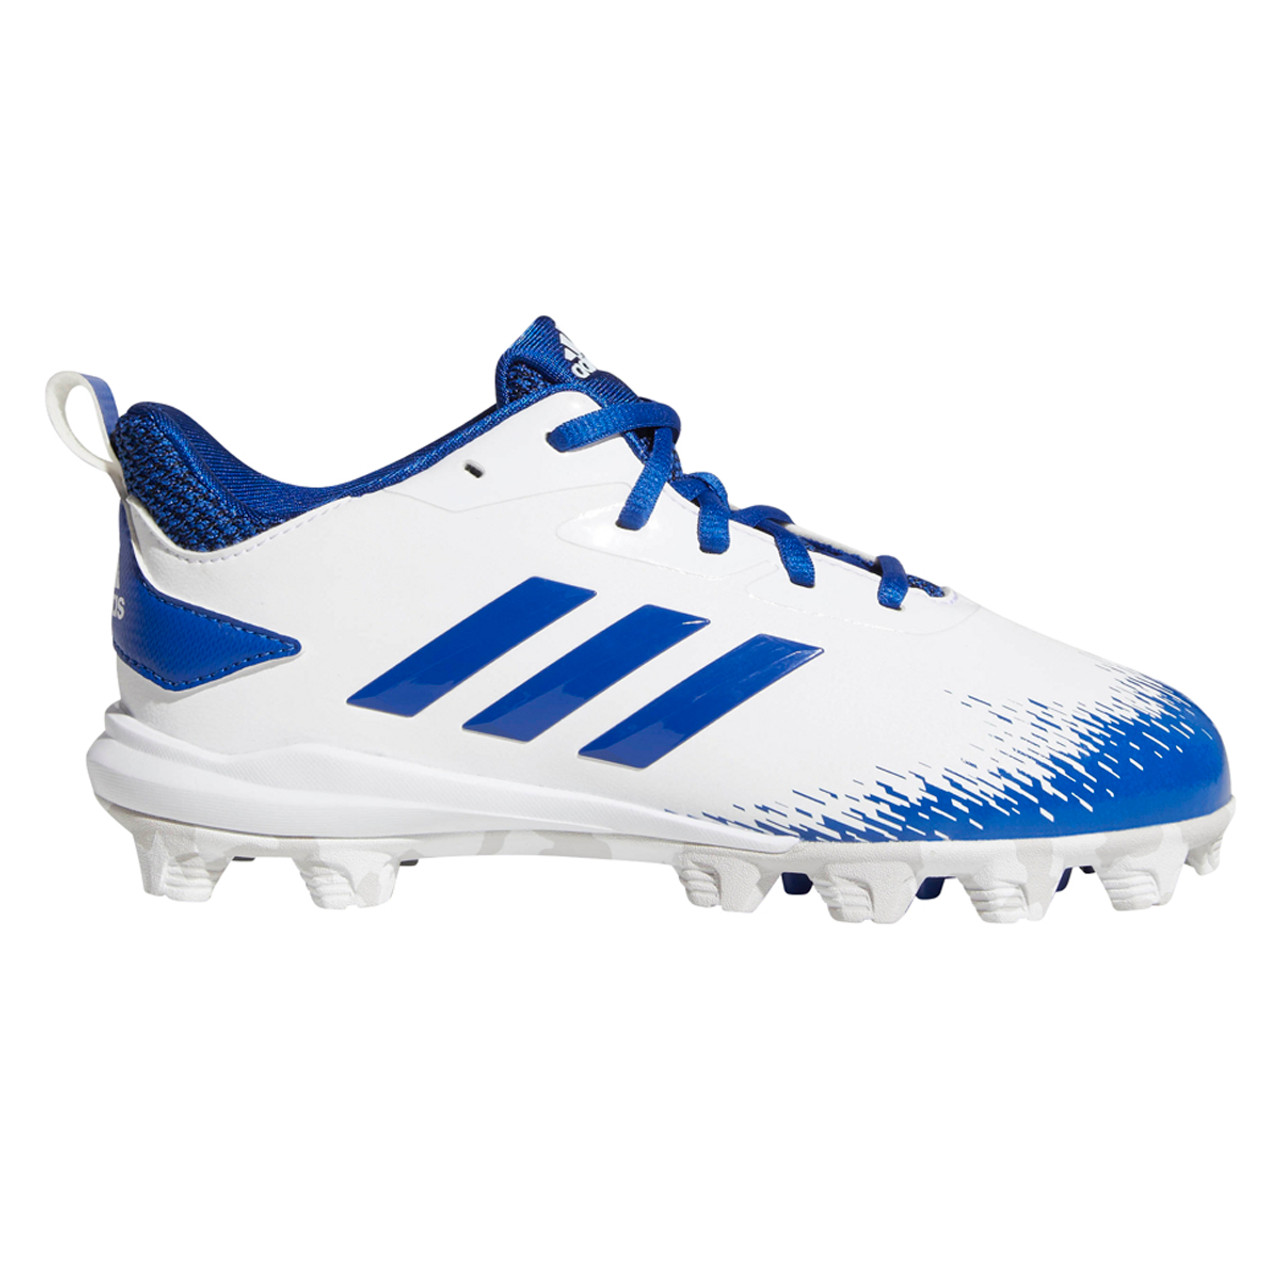 a902f1f39a1 Adidas Adizero Afterburner V MD Youth Baseball Cleats CG5239 - White ...